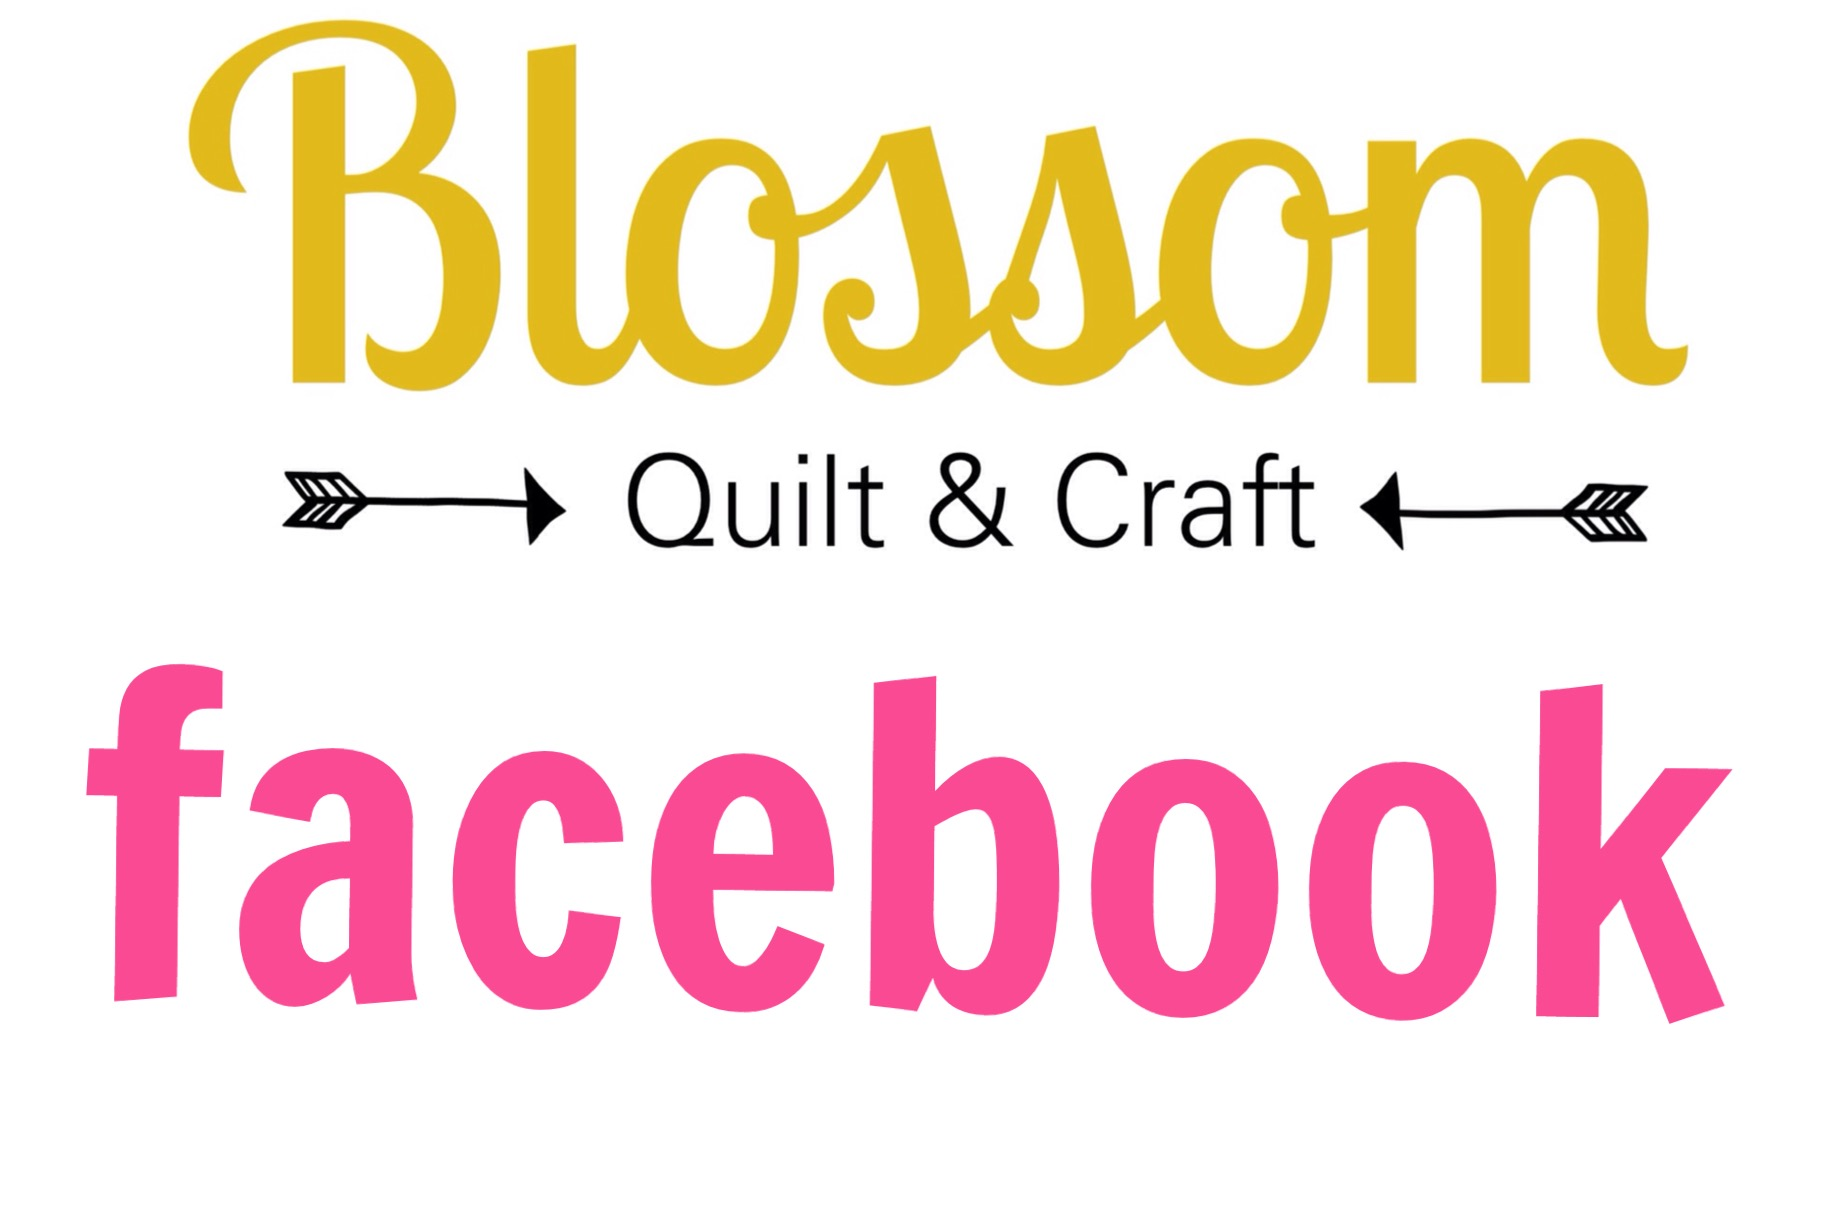 Blossom quilt et craft sur Facebook